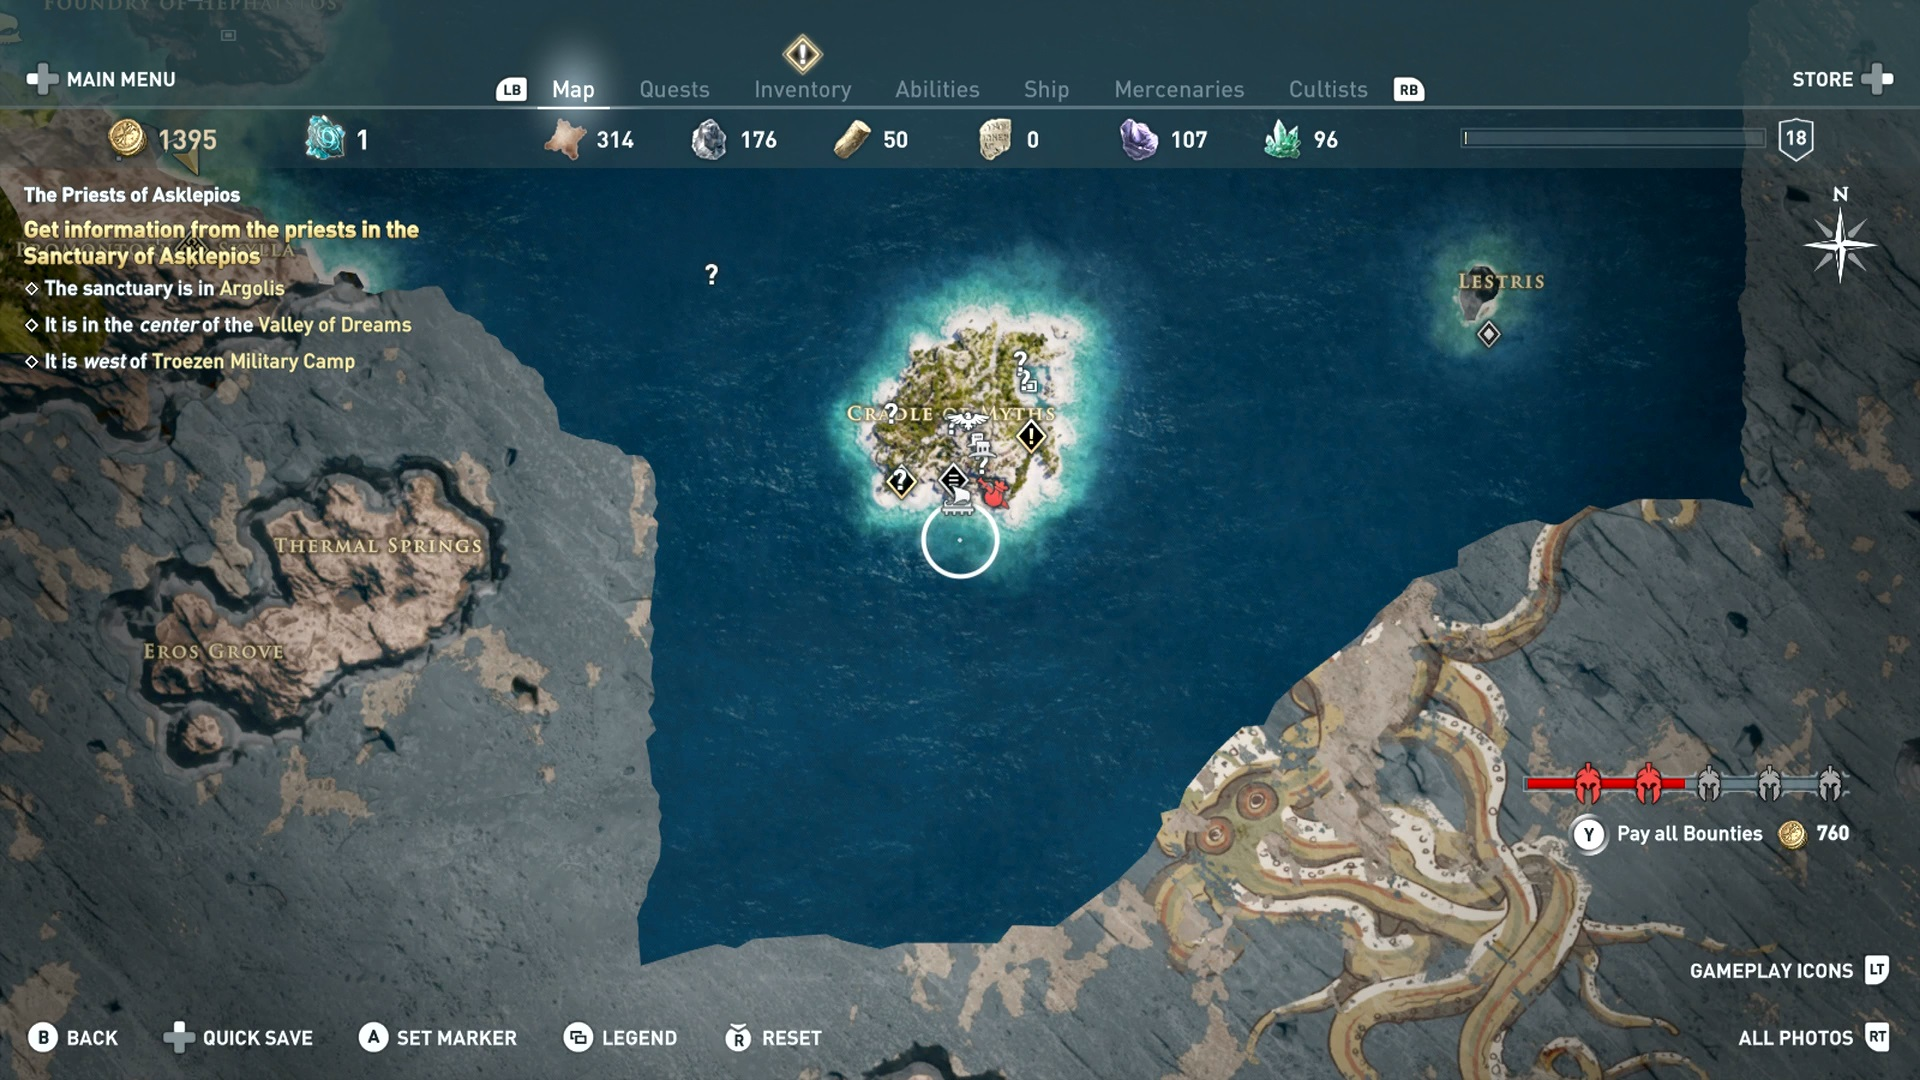 Map screen shows the location of the bounty giver, as well as the cost to pay the bounty.